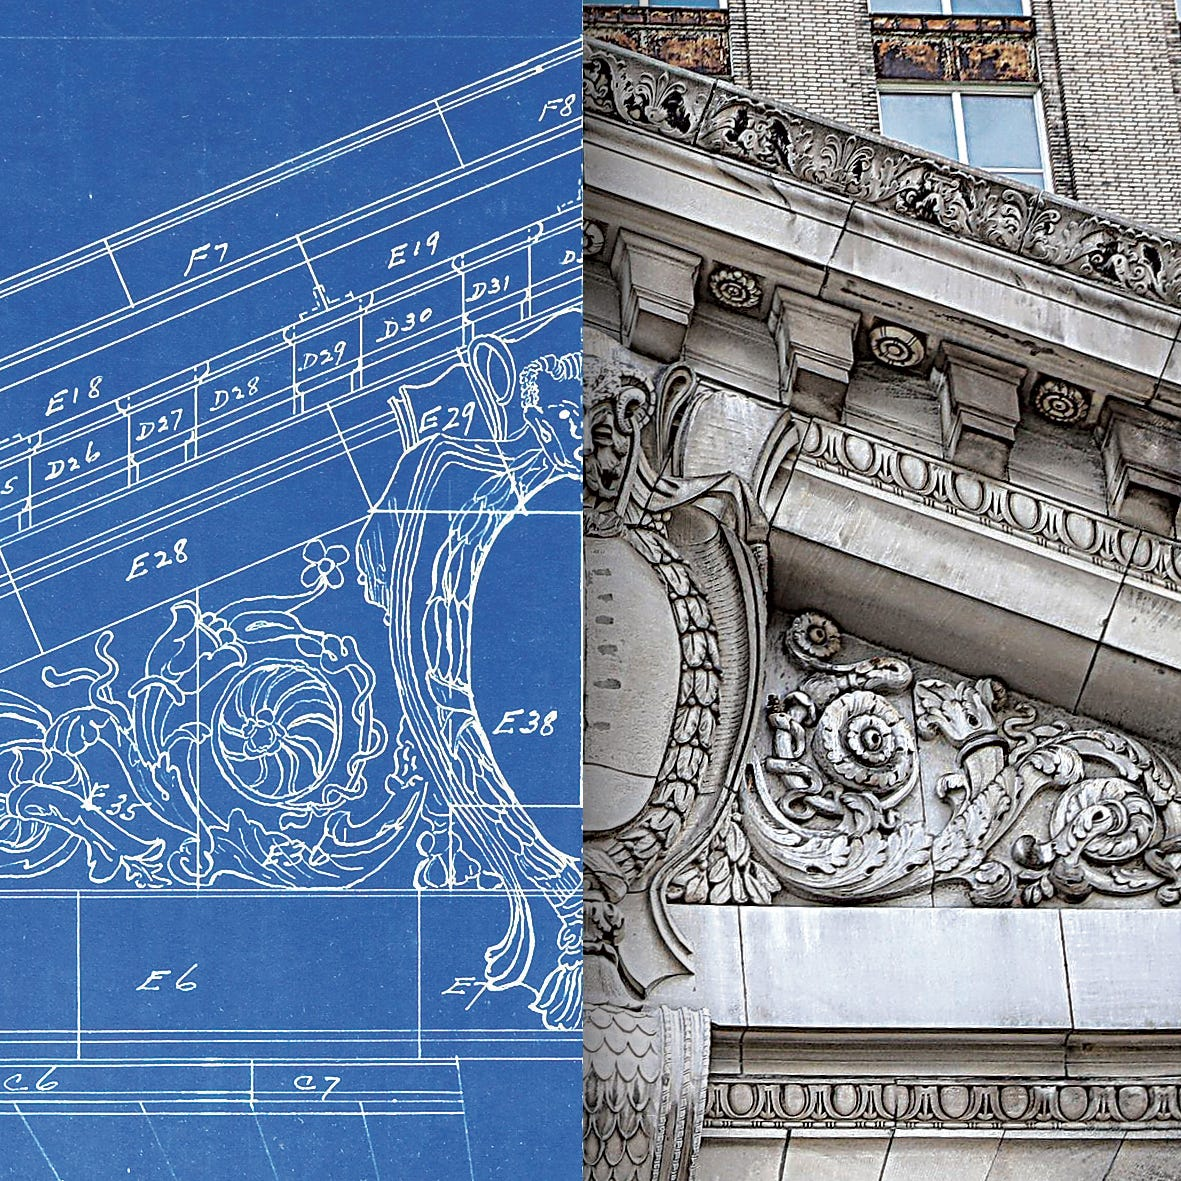 Detroit train station architectural drawings sat in rotting trailers for years